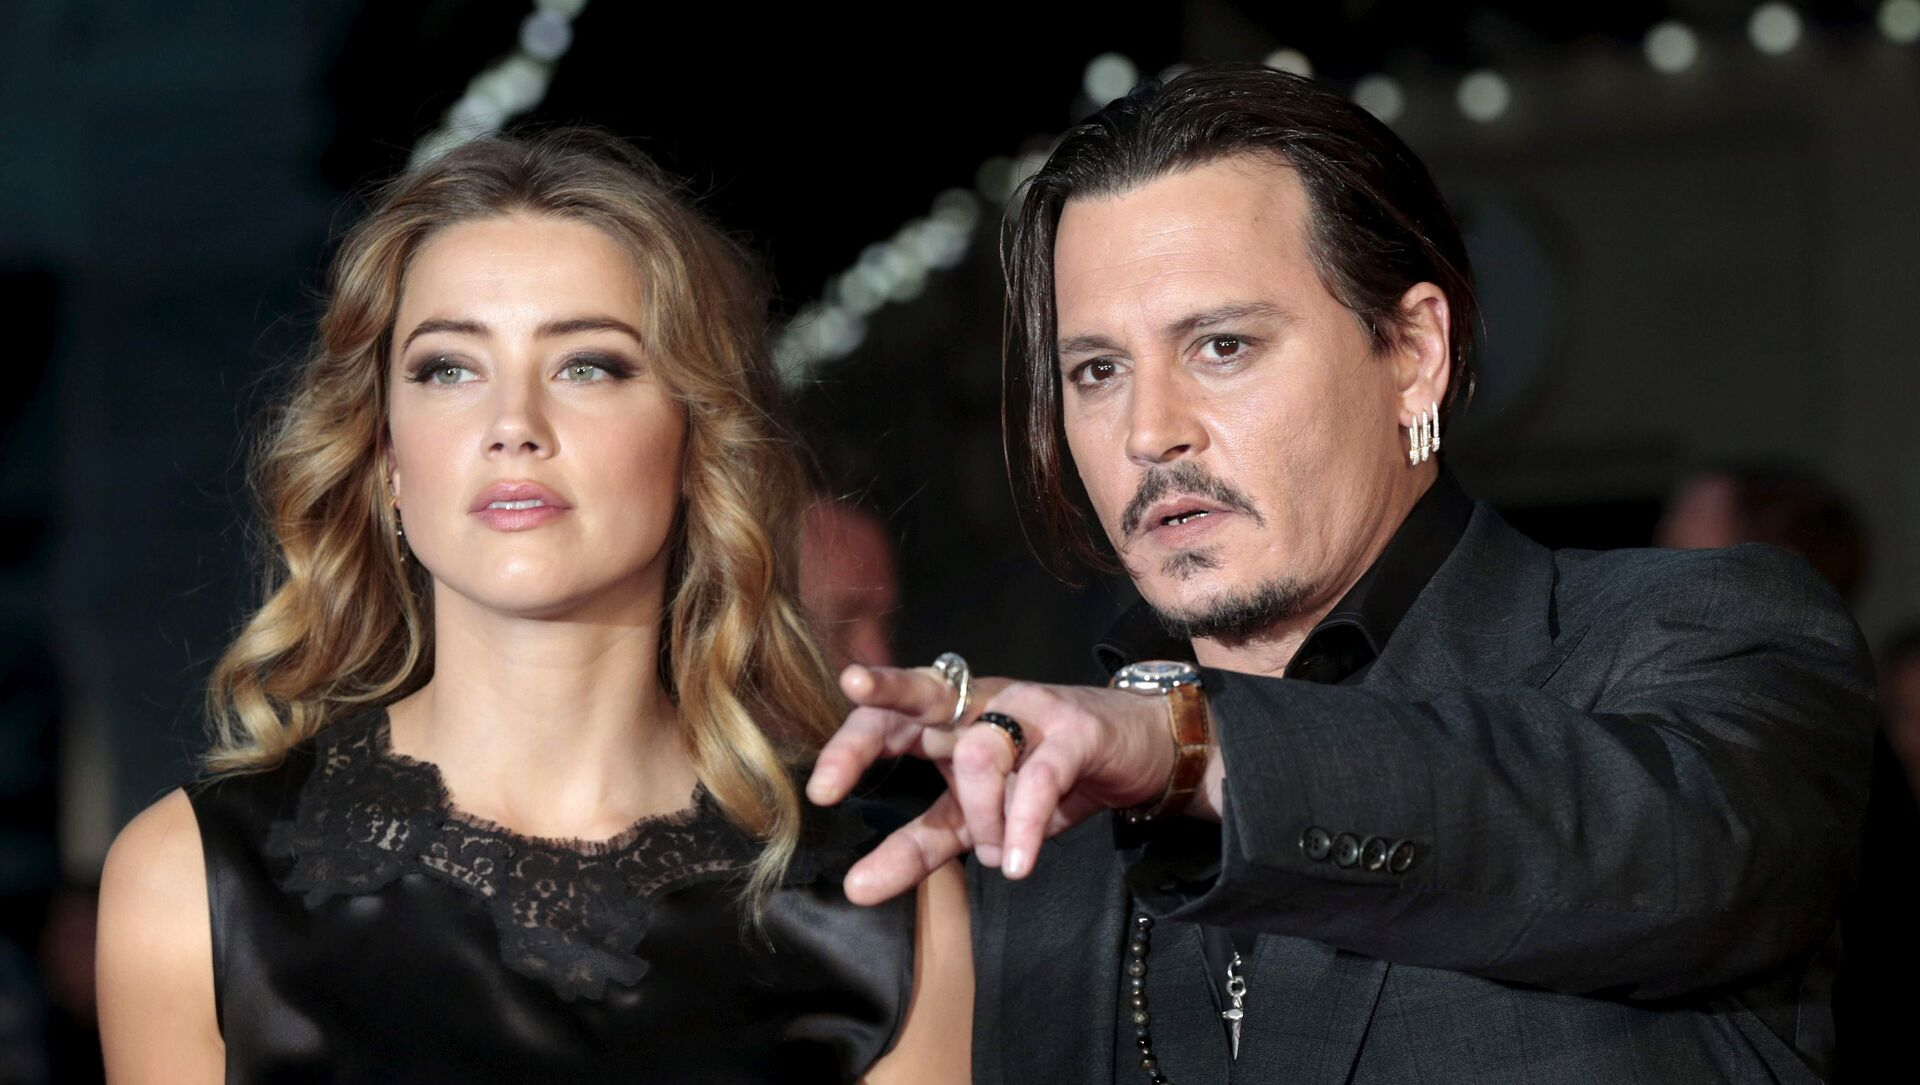 Cast member Johnny Depp and his actress wife Amber Heard arrive for the premiere of the British film Black Mass in London, Britain, 11 October 2015.  - Sputnik International, 1920, 02.08.2021